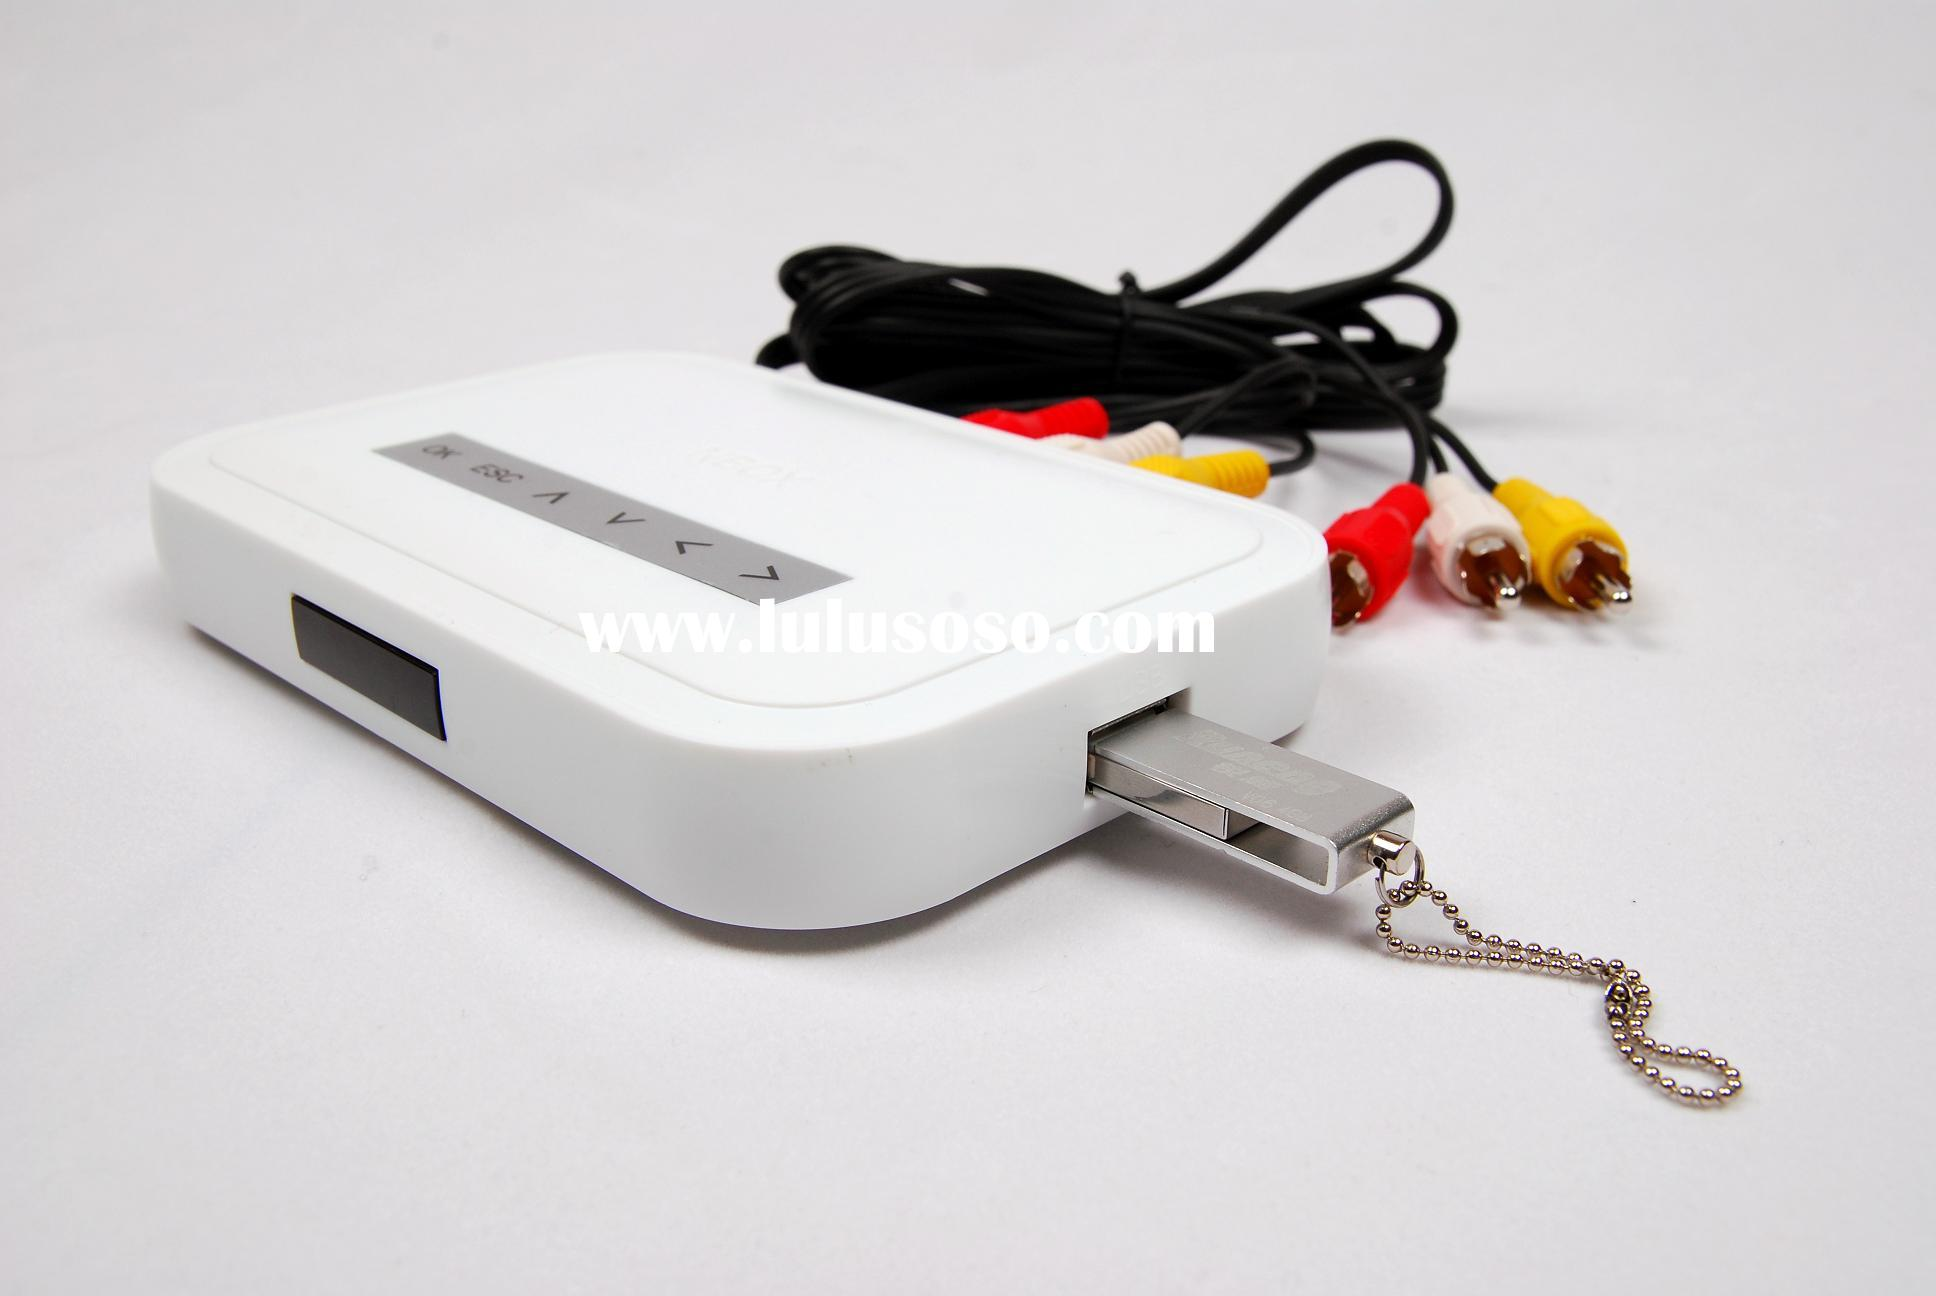 Media Player Nbox Hard Disk Players Inch Hdd